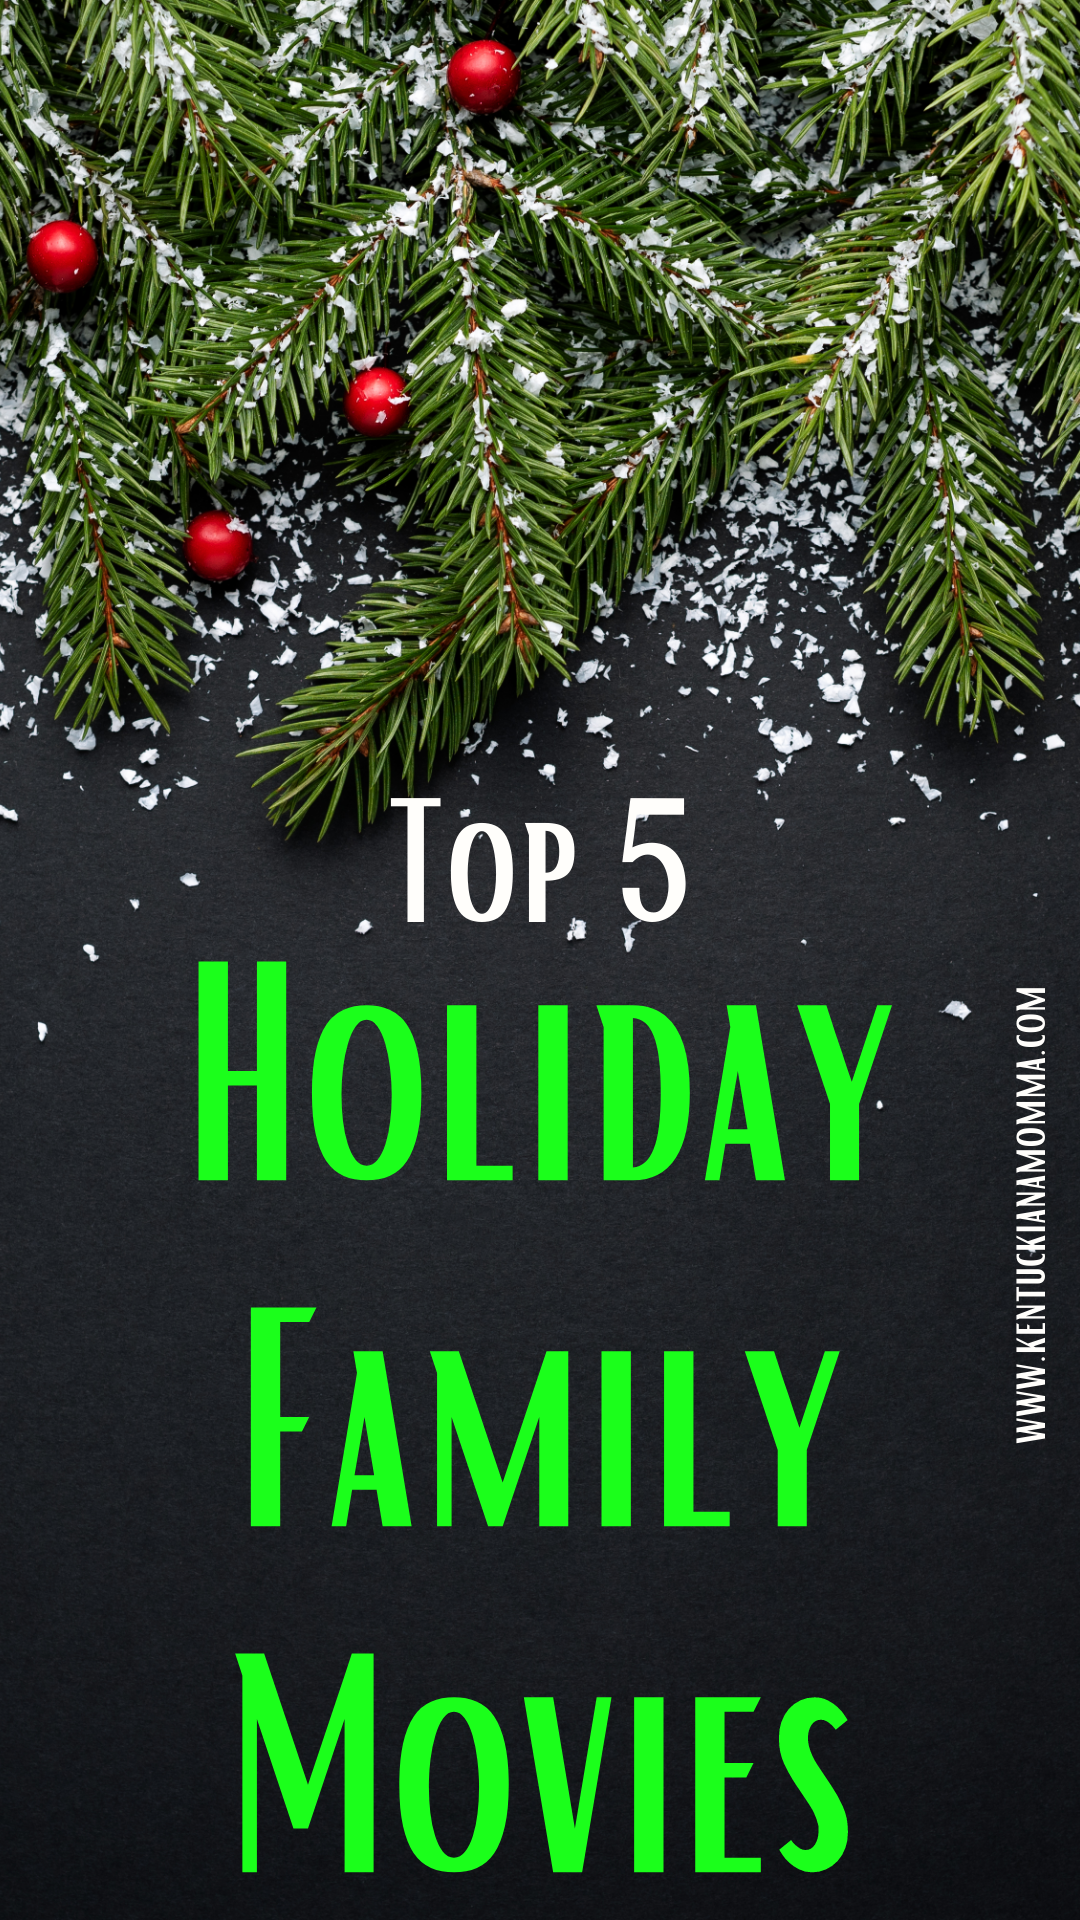 Top 5 Holiday Family Movies on Amazon Prime Holiday